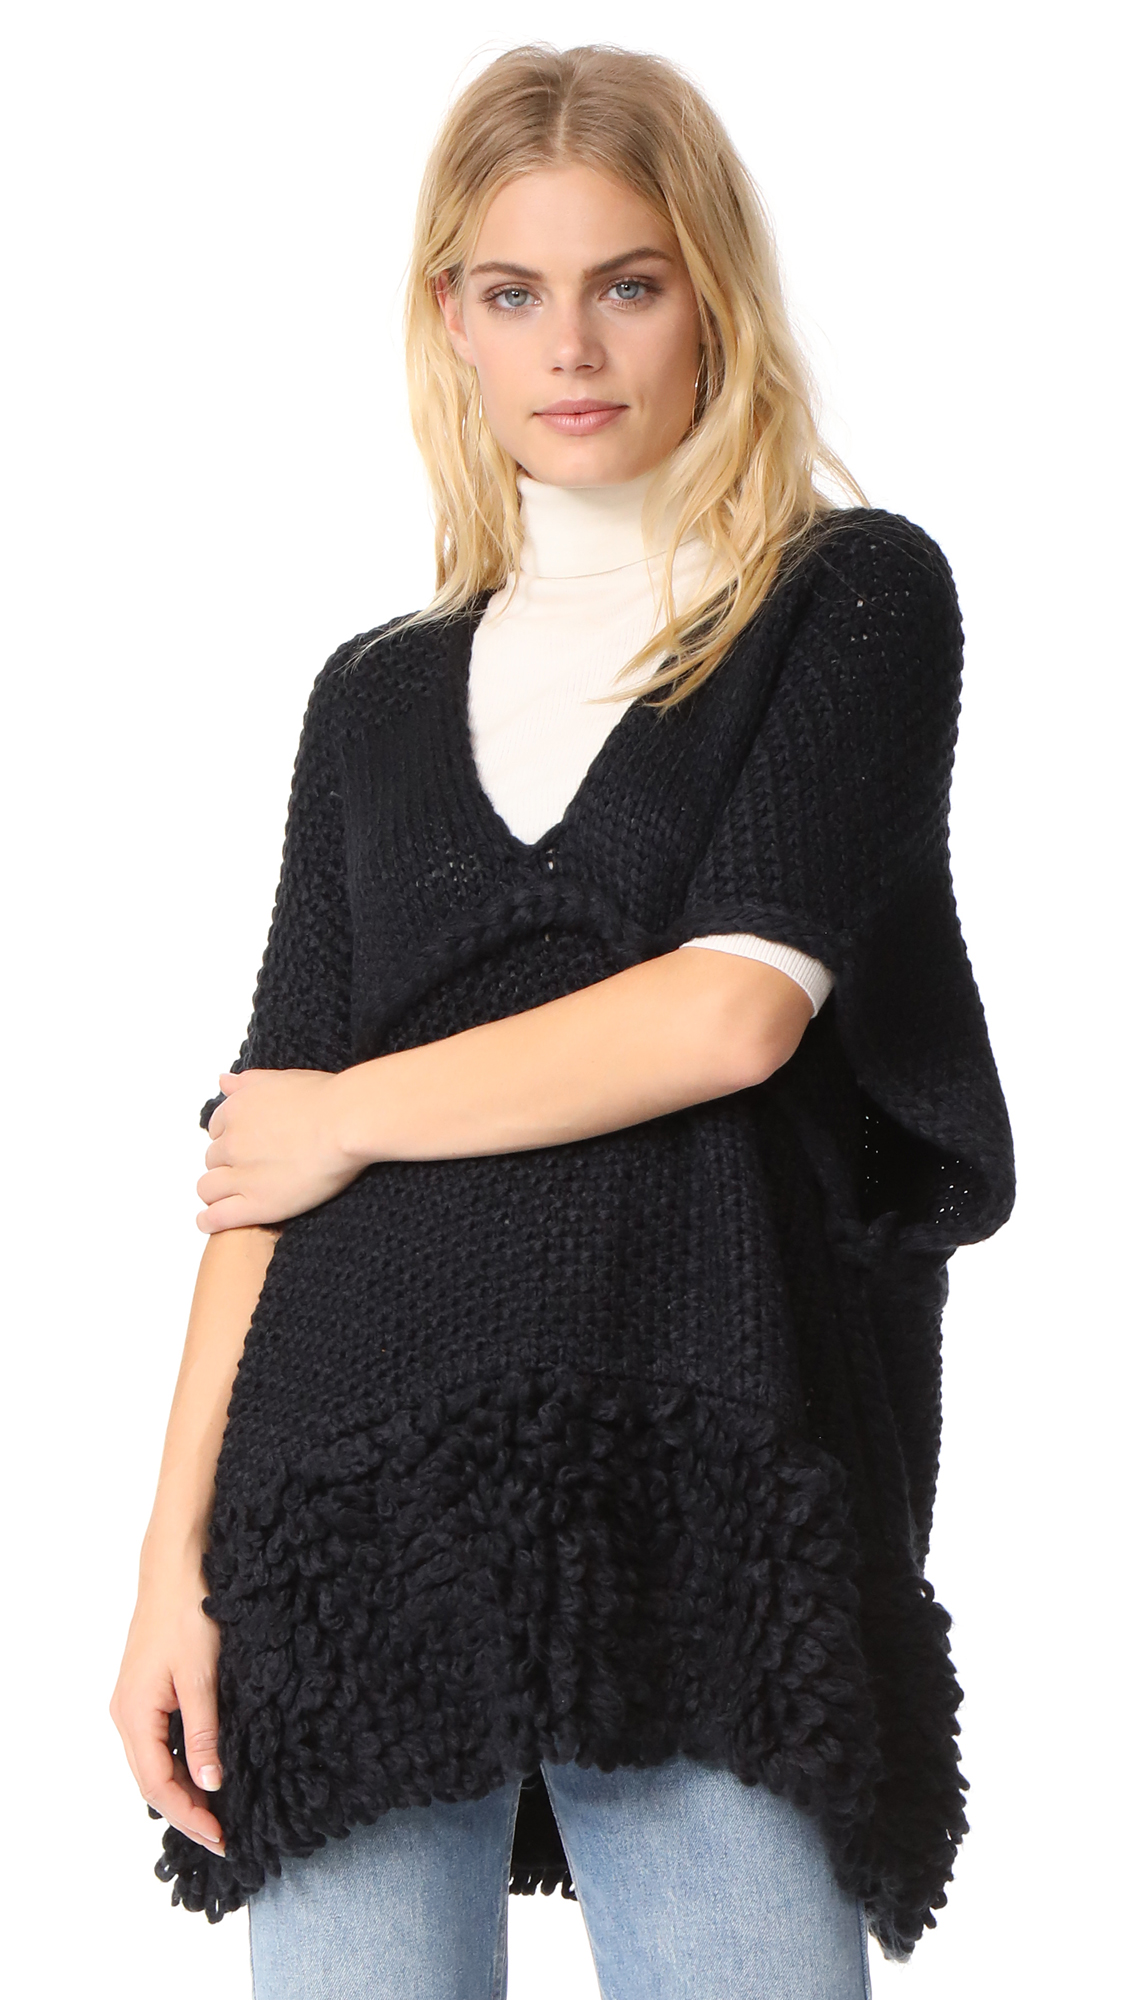 Rebecca Minkoff Knit Poncho with Loops - Black